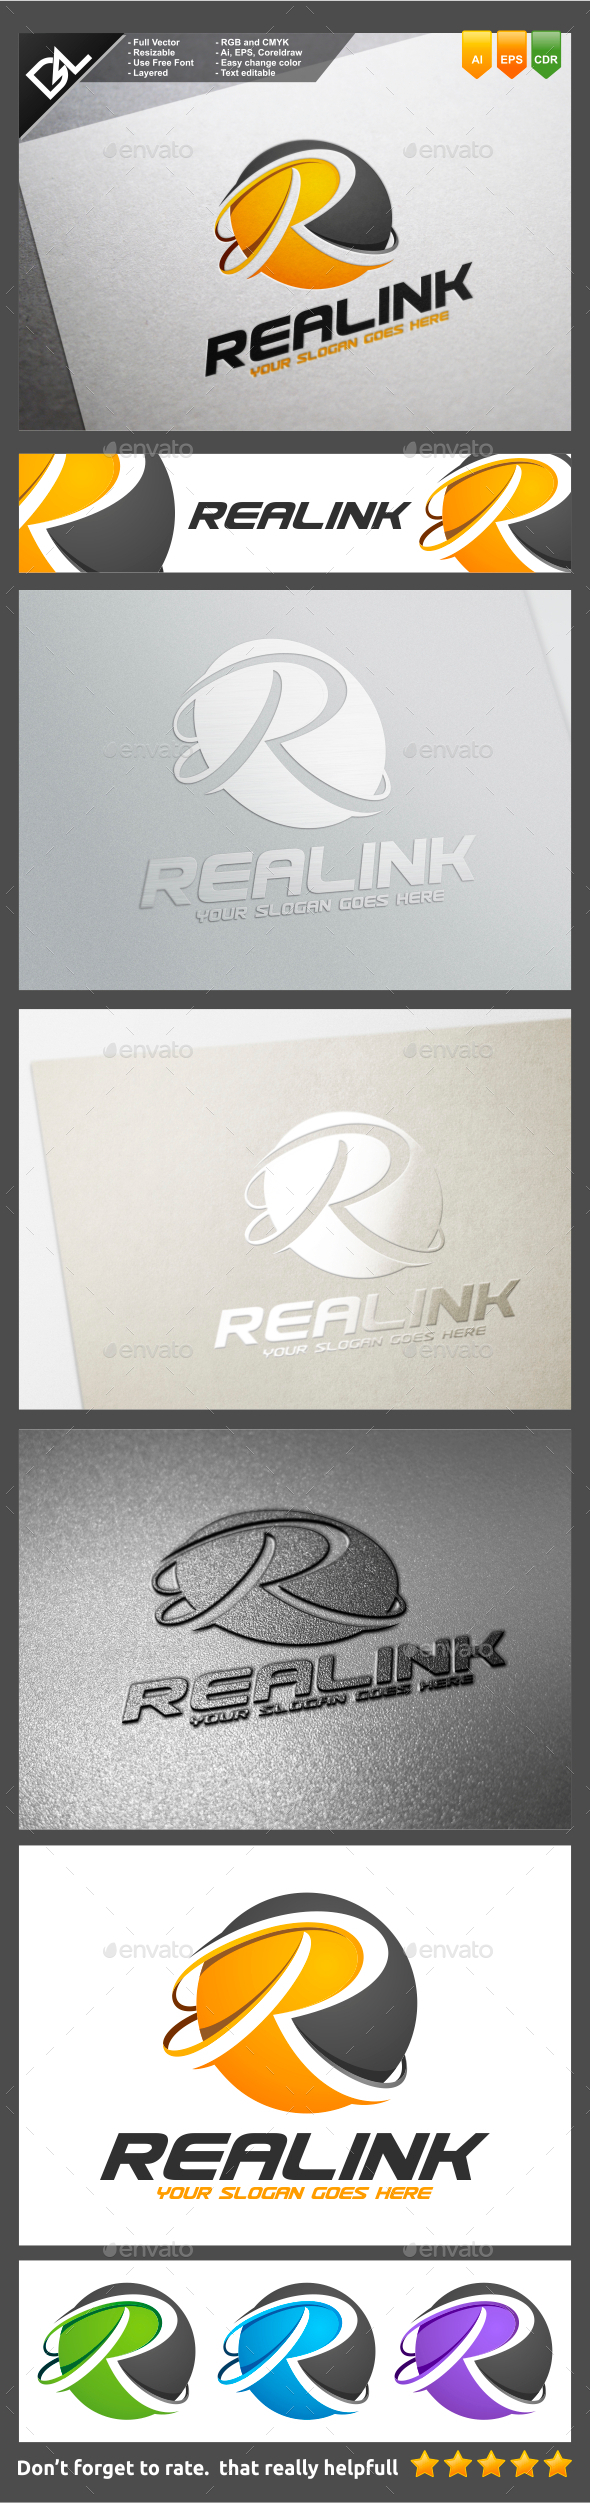 GraphicRiver Realink 11052237